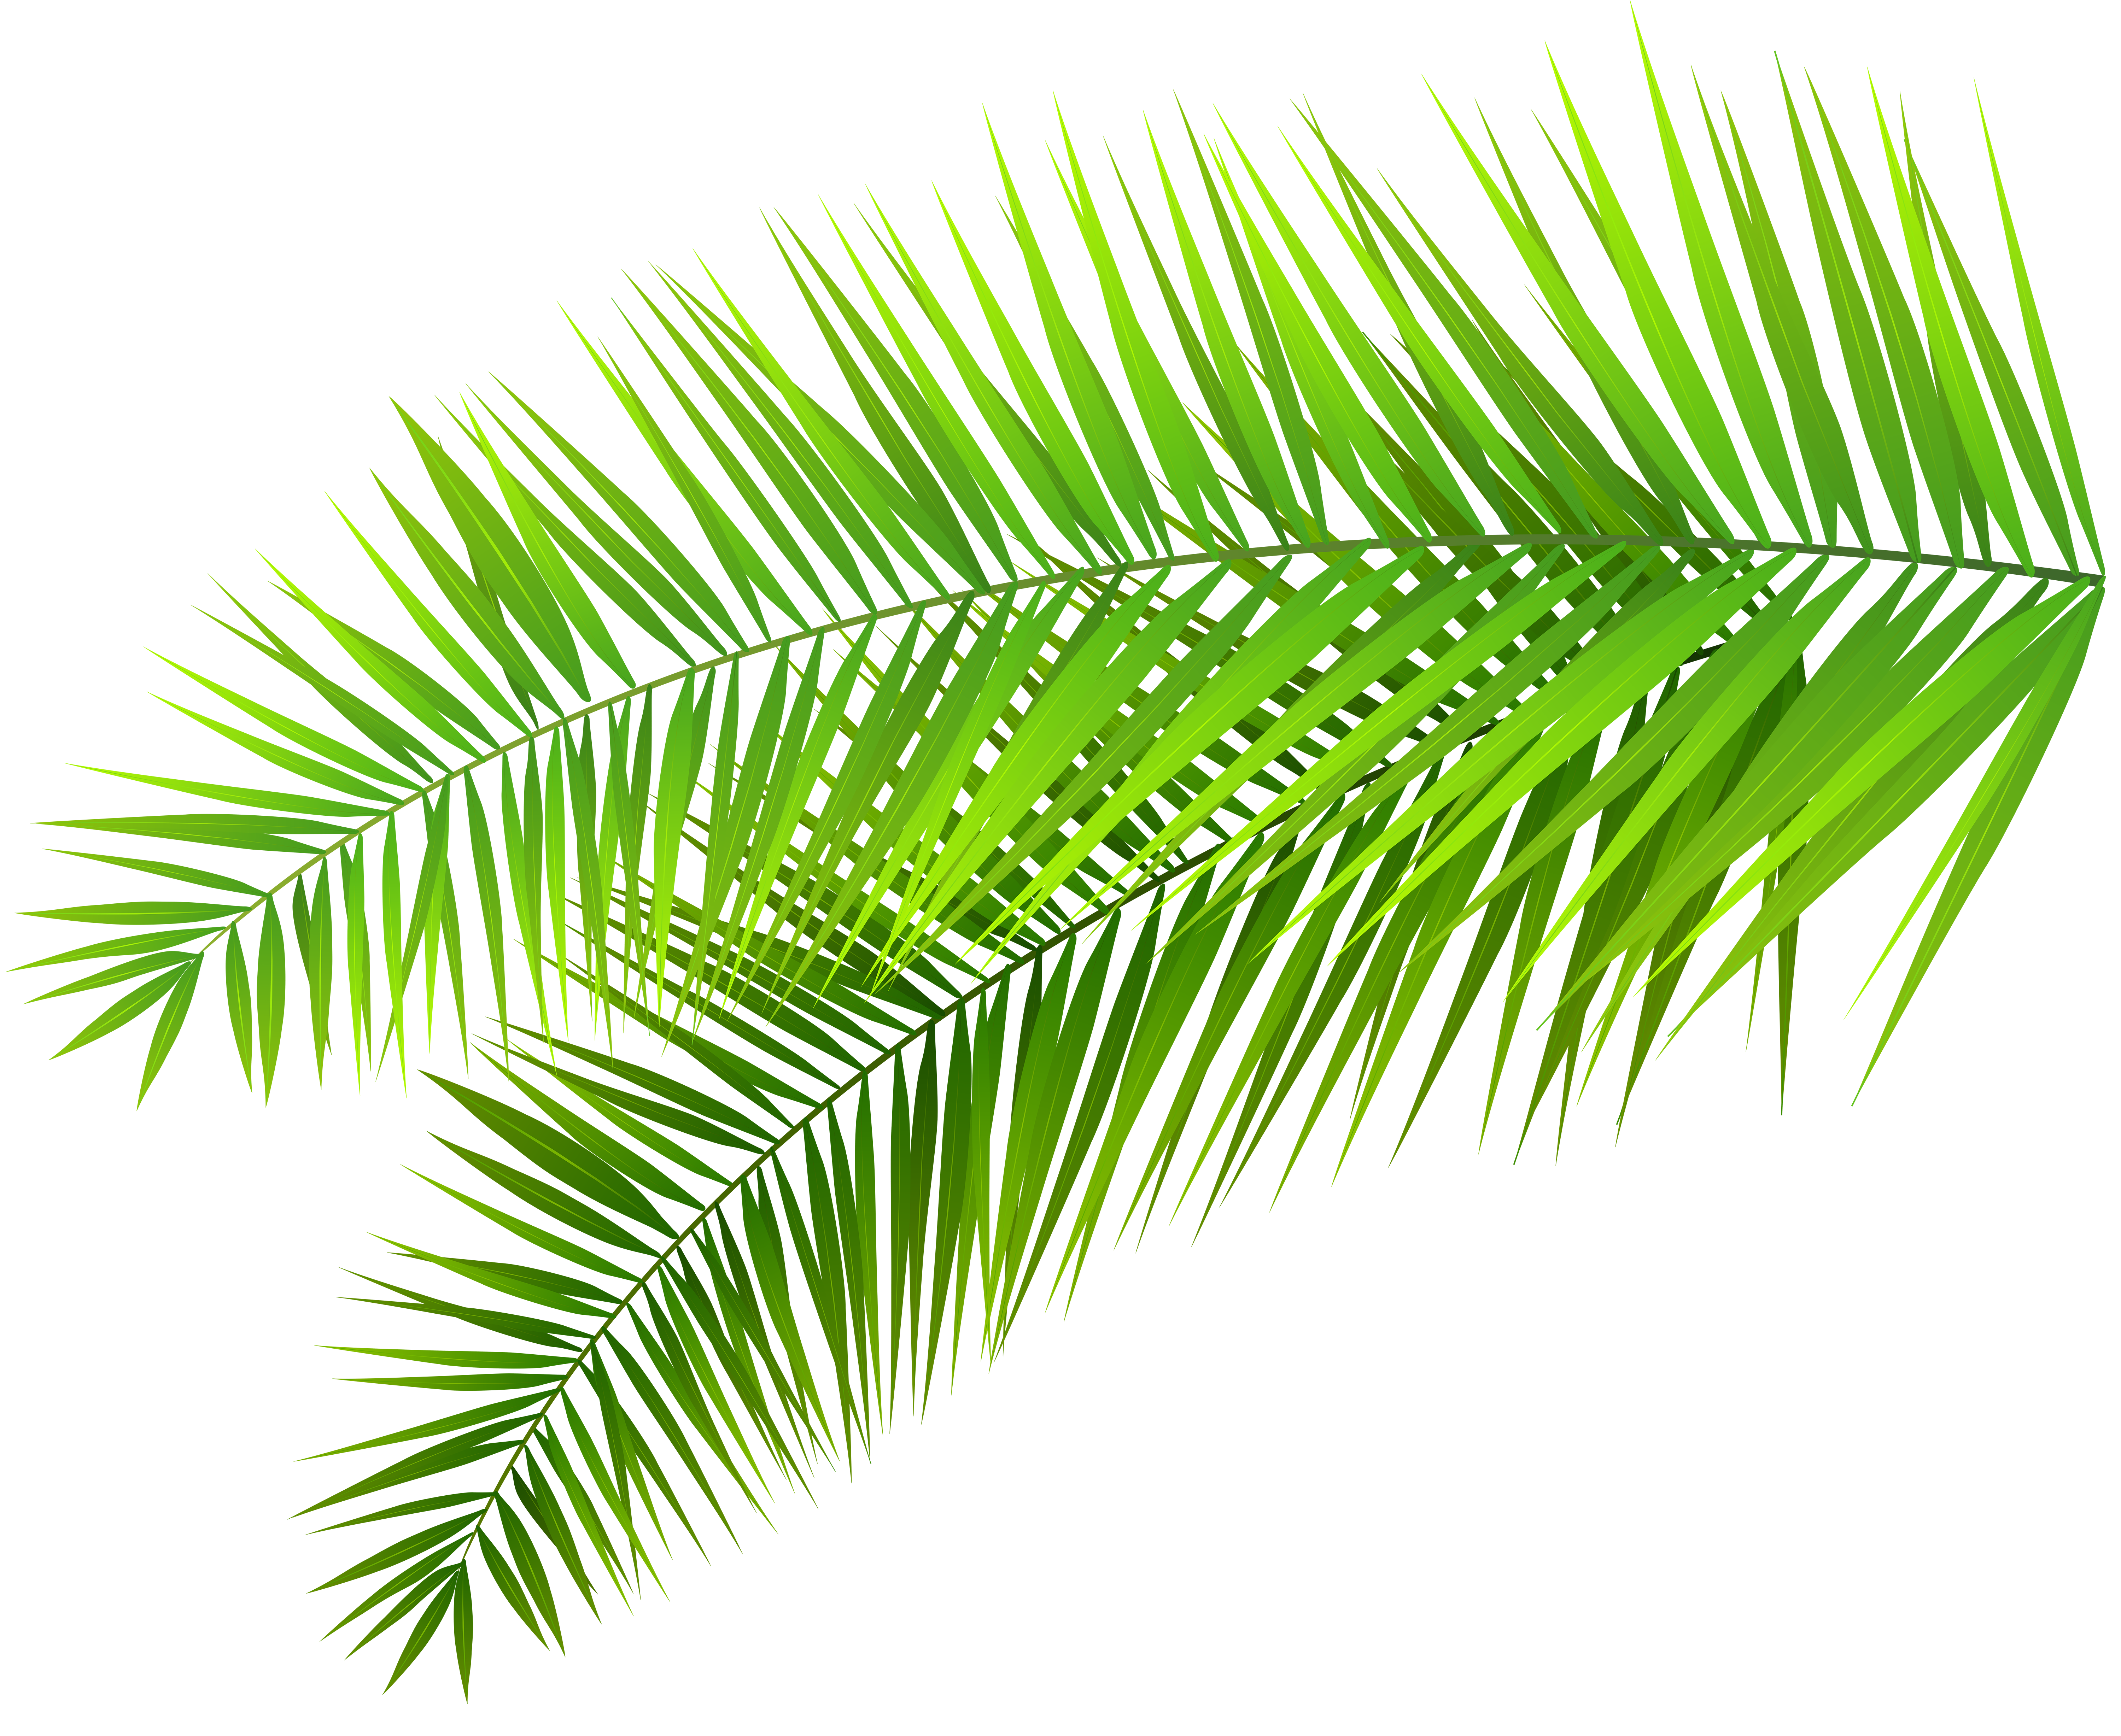 Branch cliparts download clip. Free clipart of palm leaves